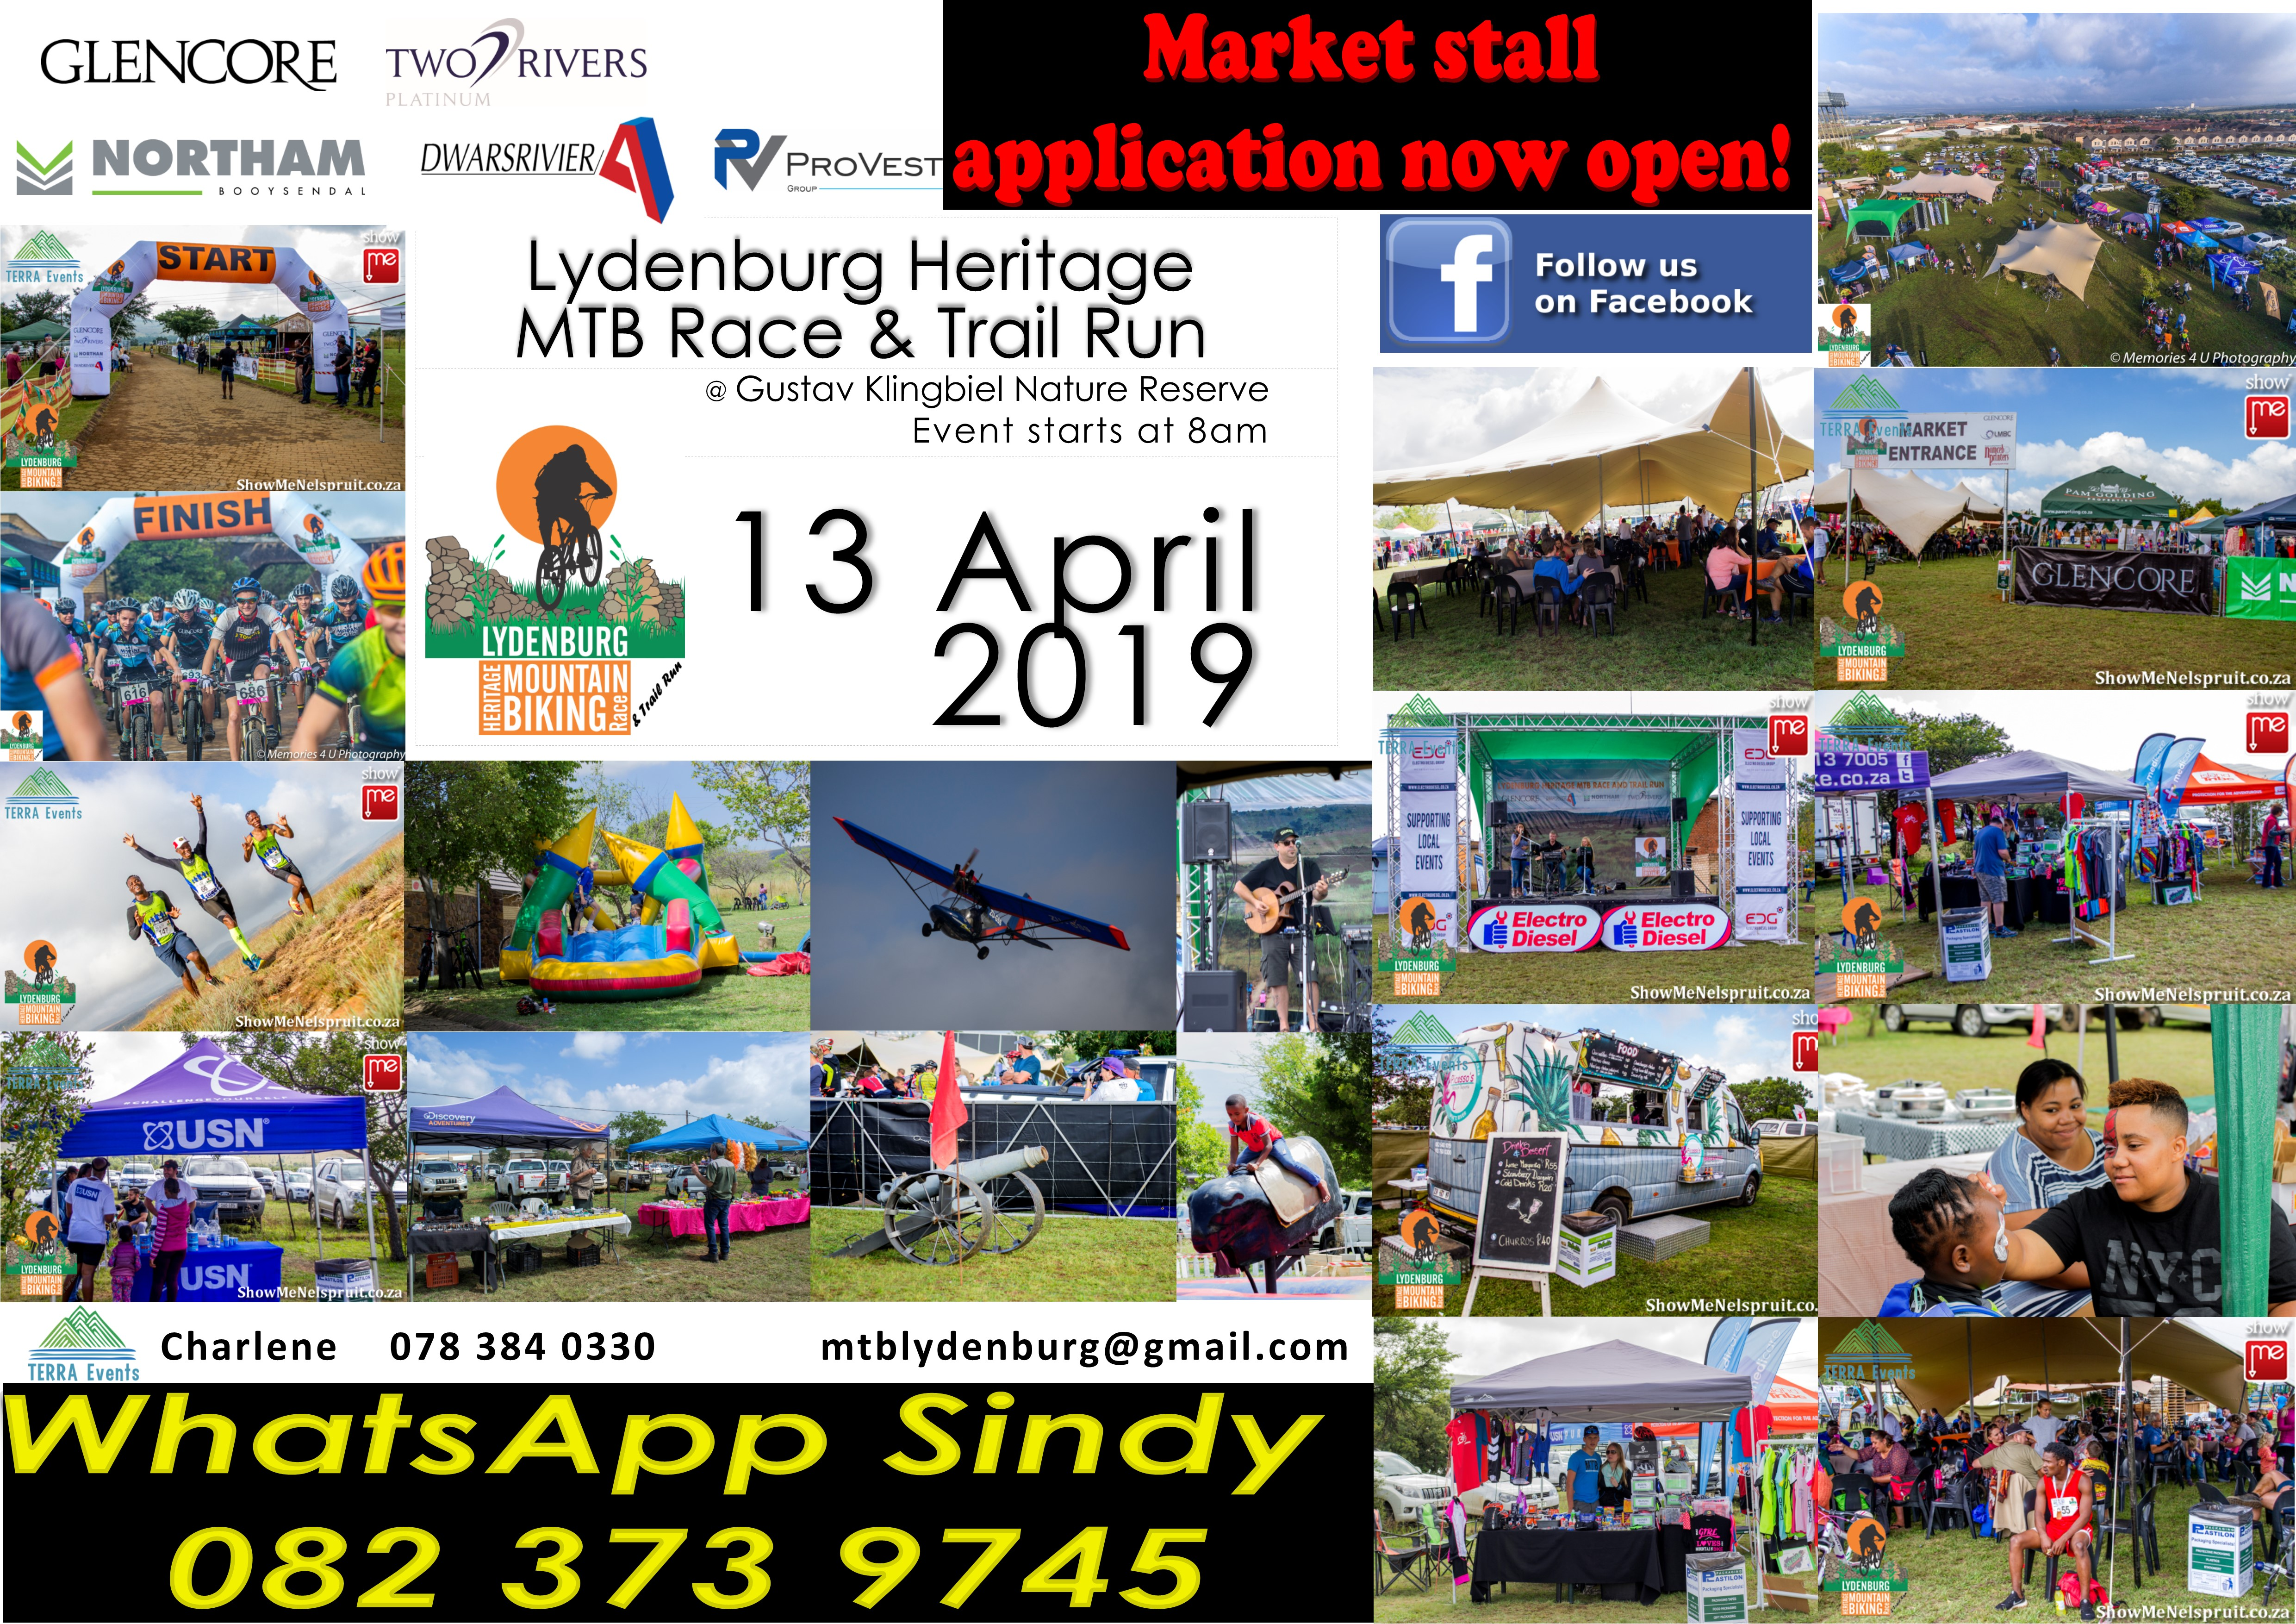 Book your Stall